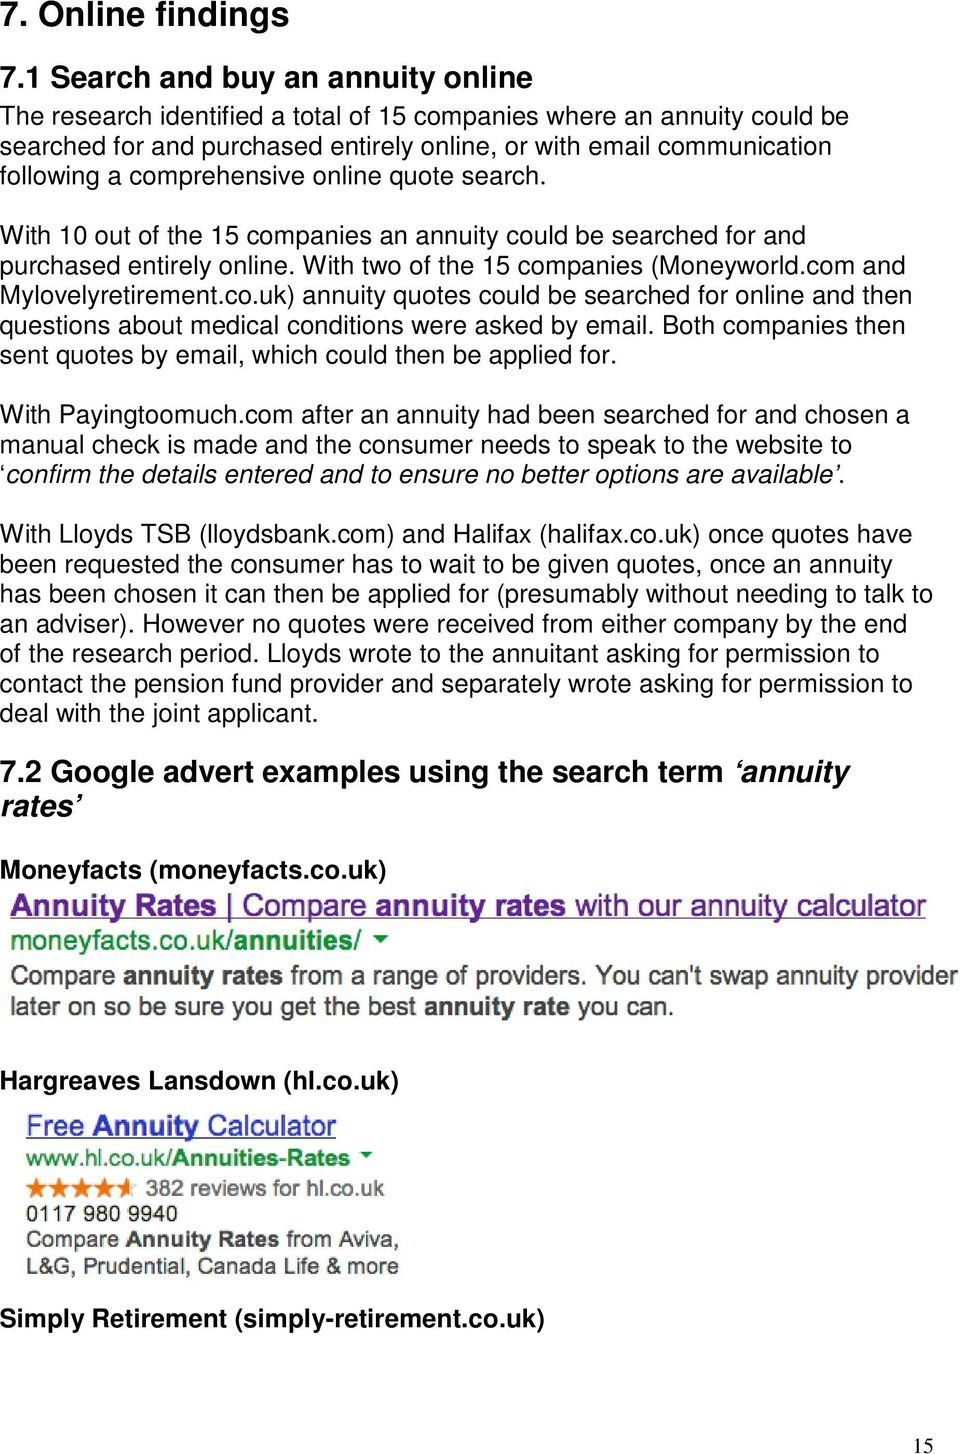 comprehensive online quote search. With 10 out of the 15 companies an annuity could be searched for and purchased entirely online. With two of the 15 companies (Moneyworld.com and Mylovelyretirement.